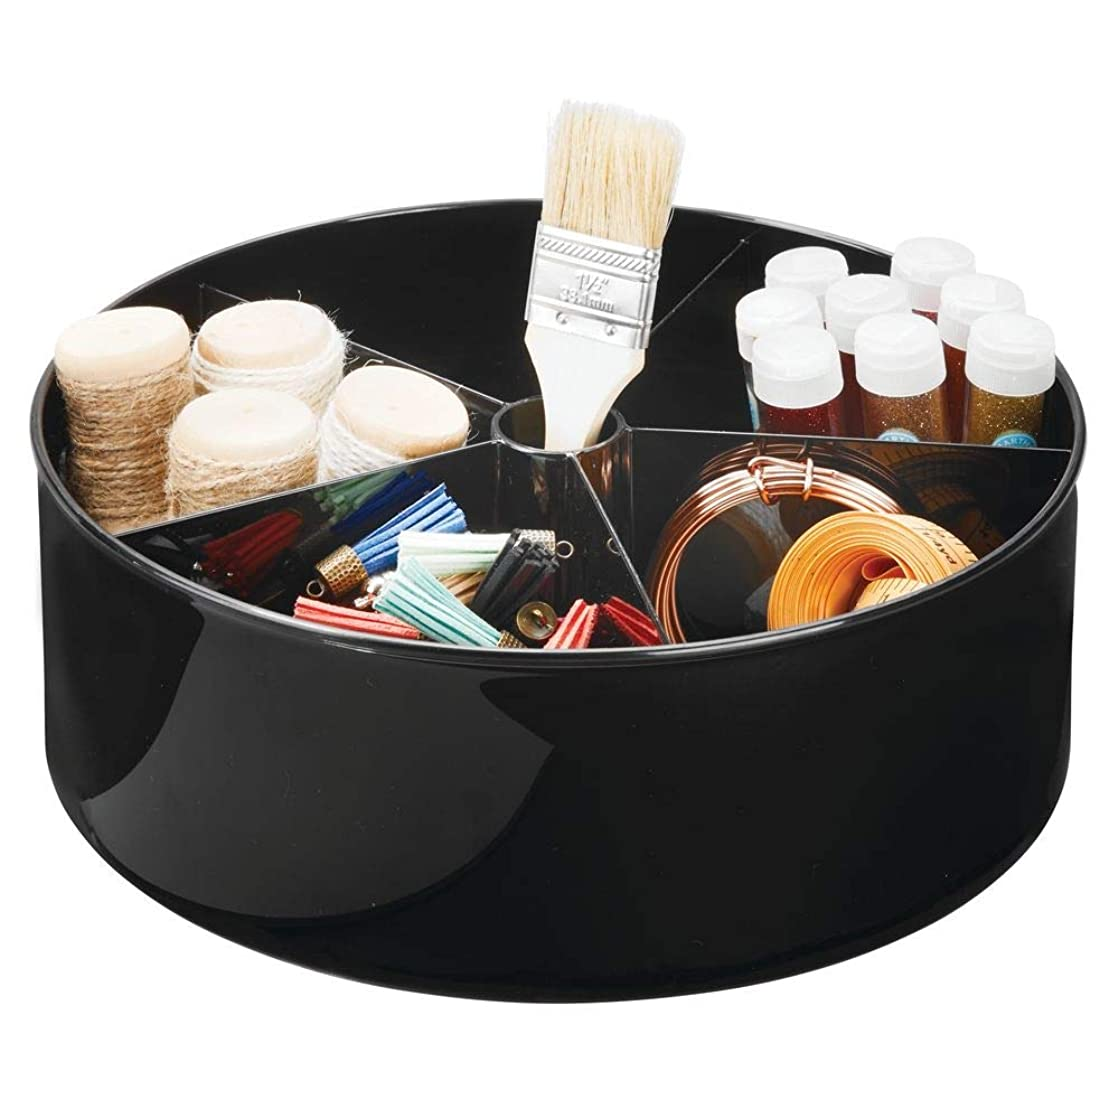 mDesign Deep Plastic Lazy Susan Turntable Storage Tray Bin - Divided Spinning Organizer for Craft, Sewing, Art, School Supplies in Home, Office, Classroom, Playroom, Studio - 5 Sections - Black